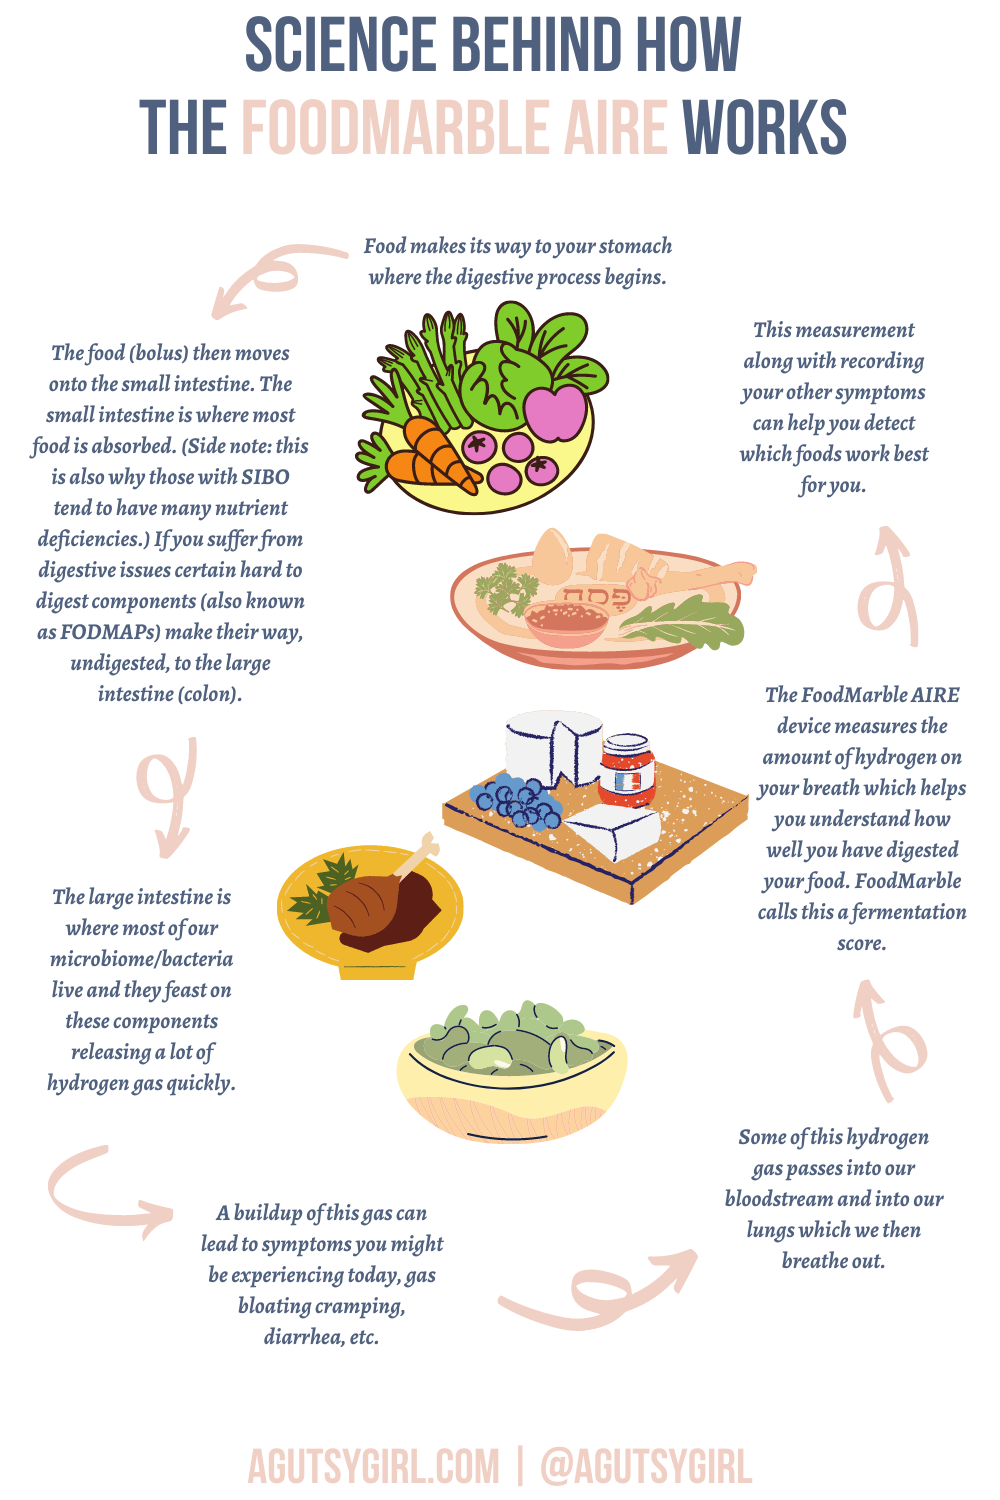 Science Behind How FoodMarble AIRE Works Hydrogen agutsygirl.com #foodmarble #healthtech #hydrogen #SIBO